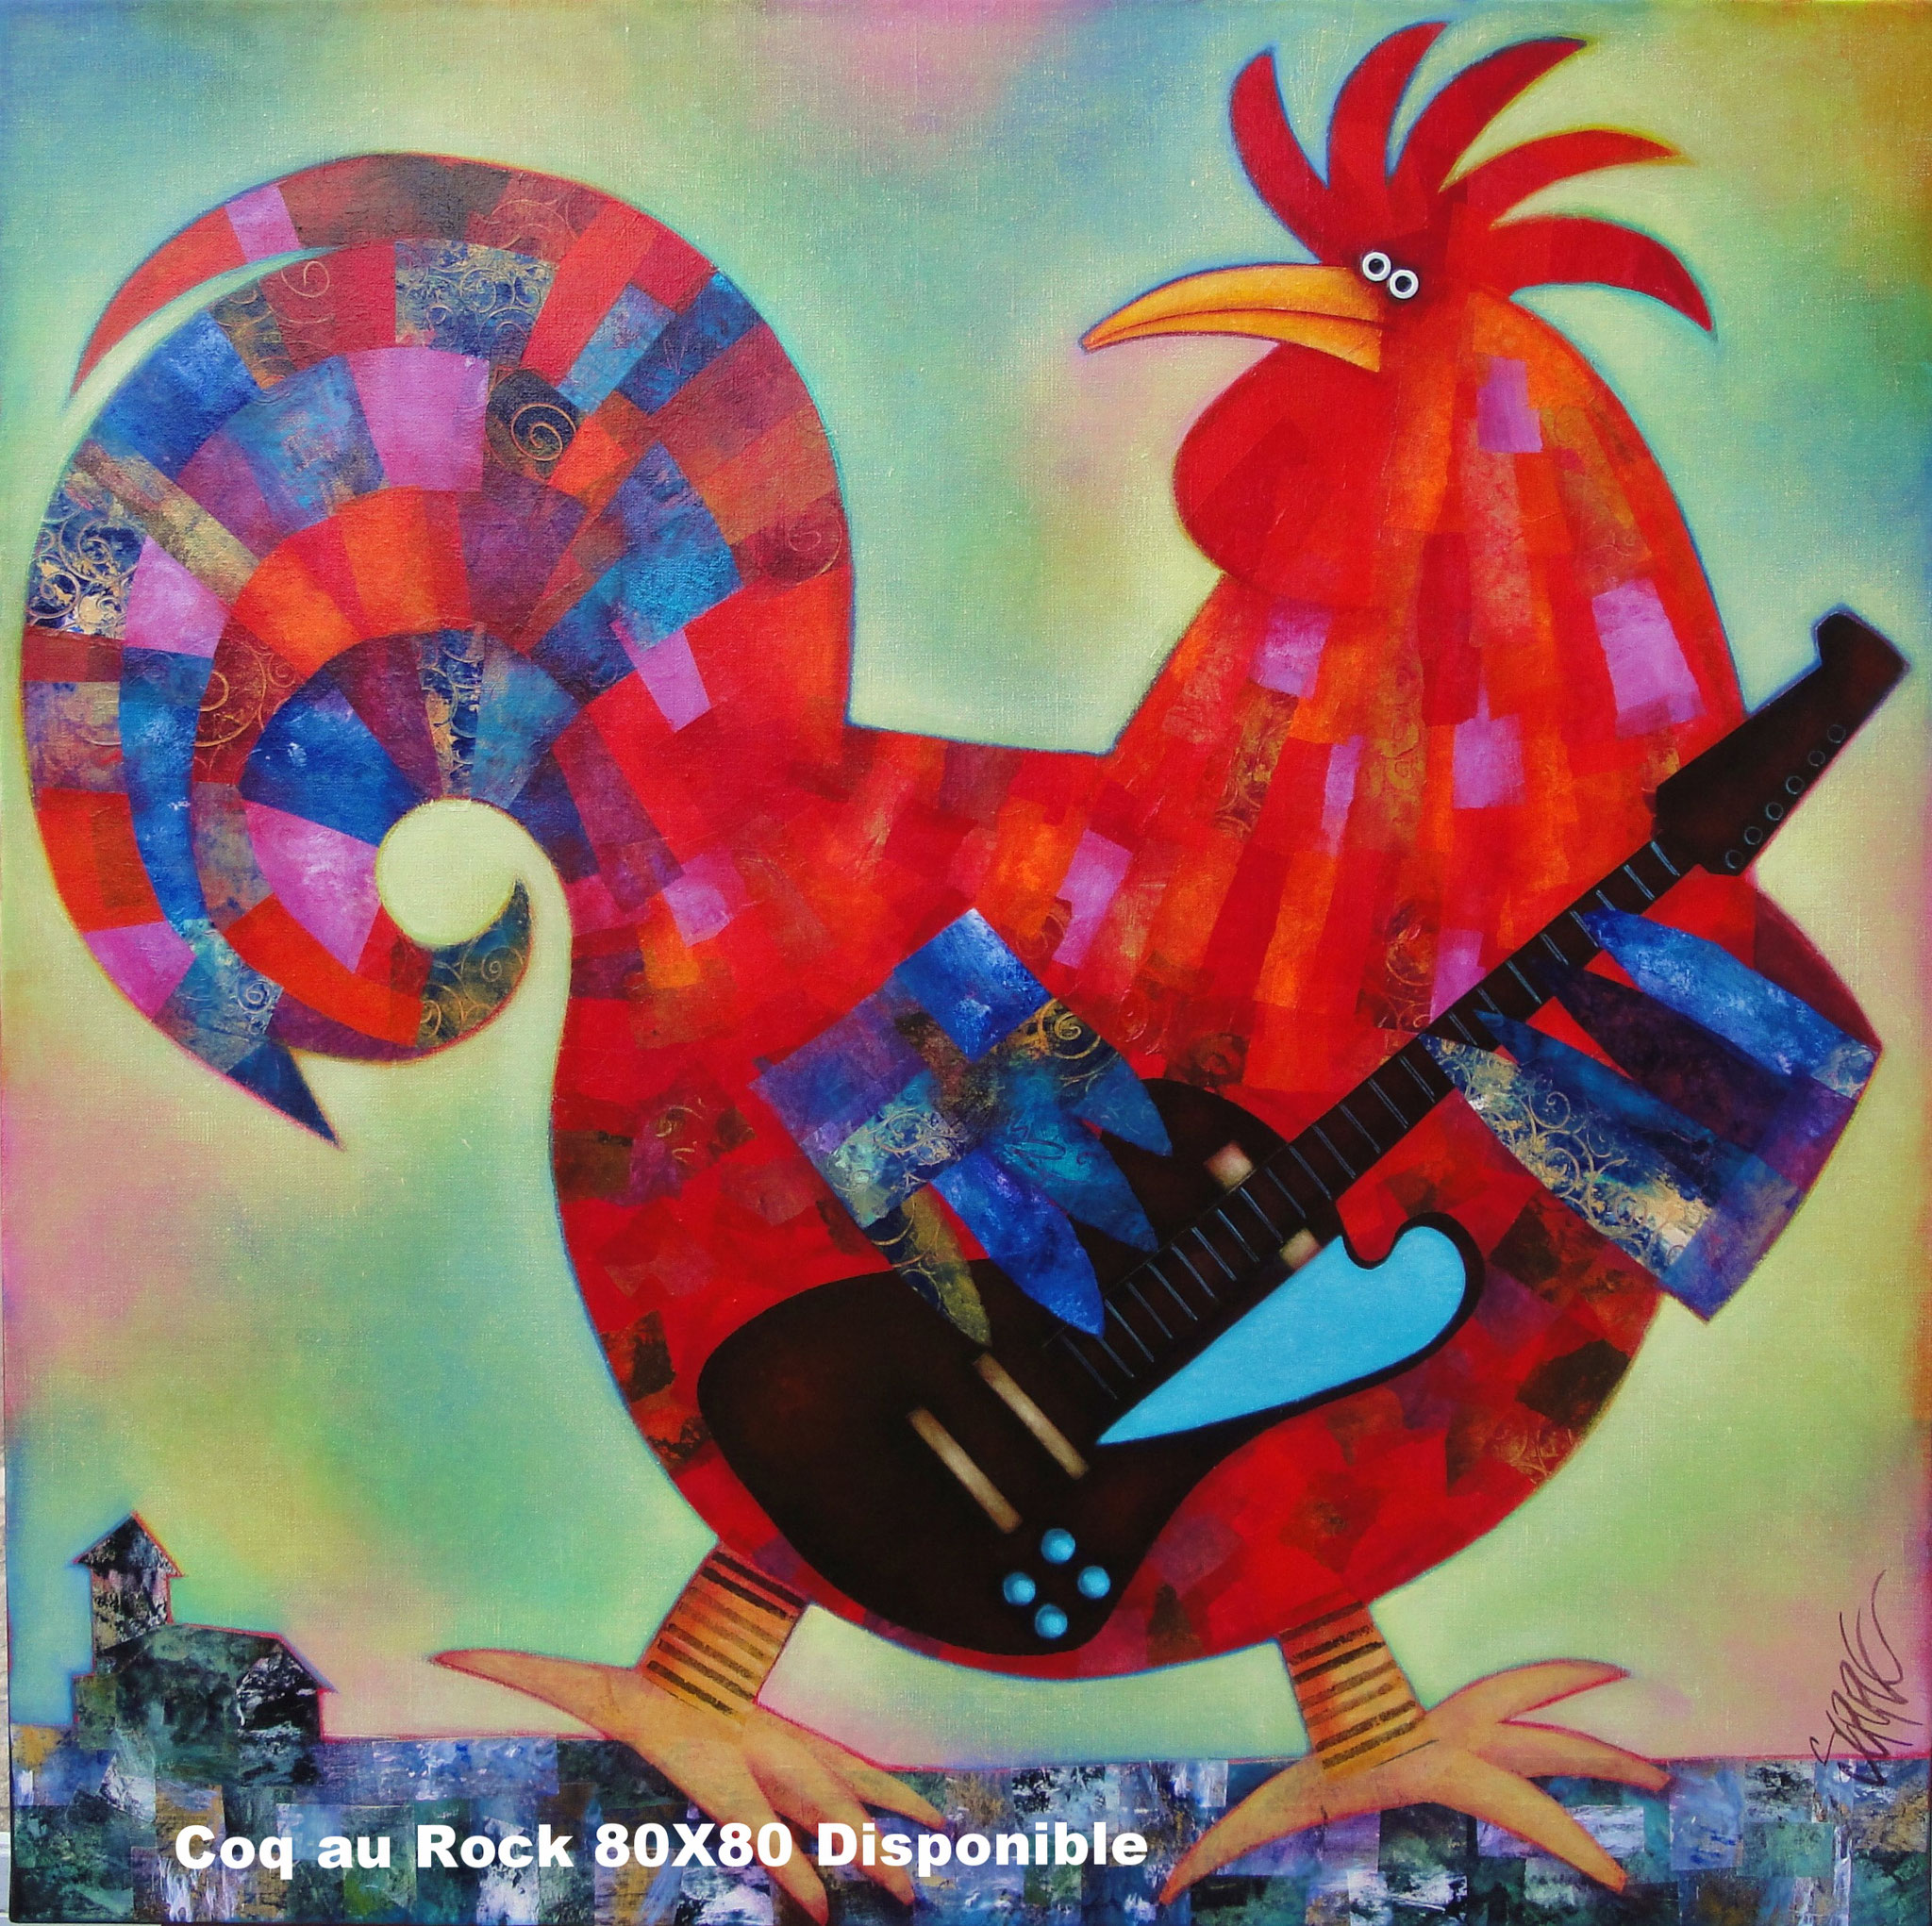 Coq au rock, 80X80 disponible